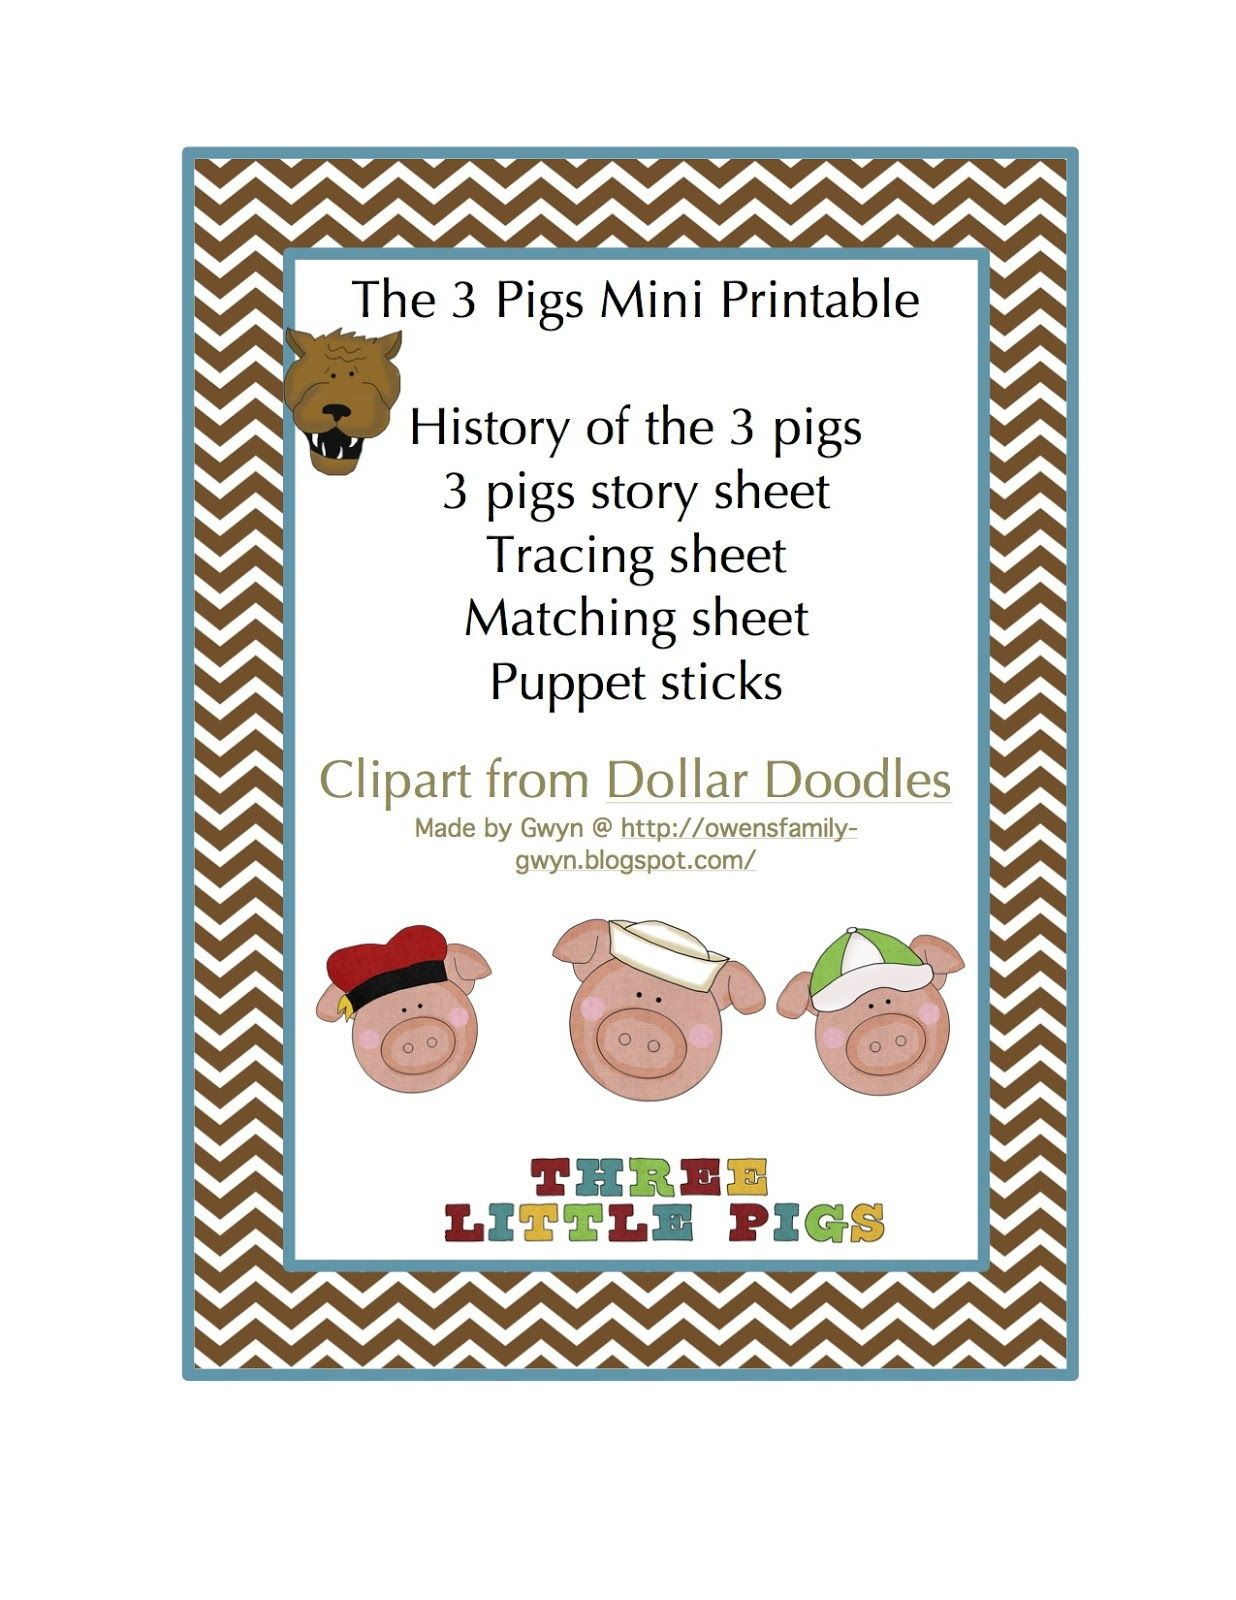 Preschool Printables The 3 Pigs Mini Printable